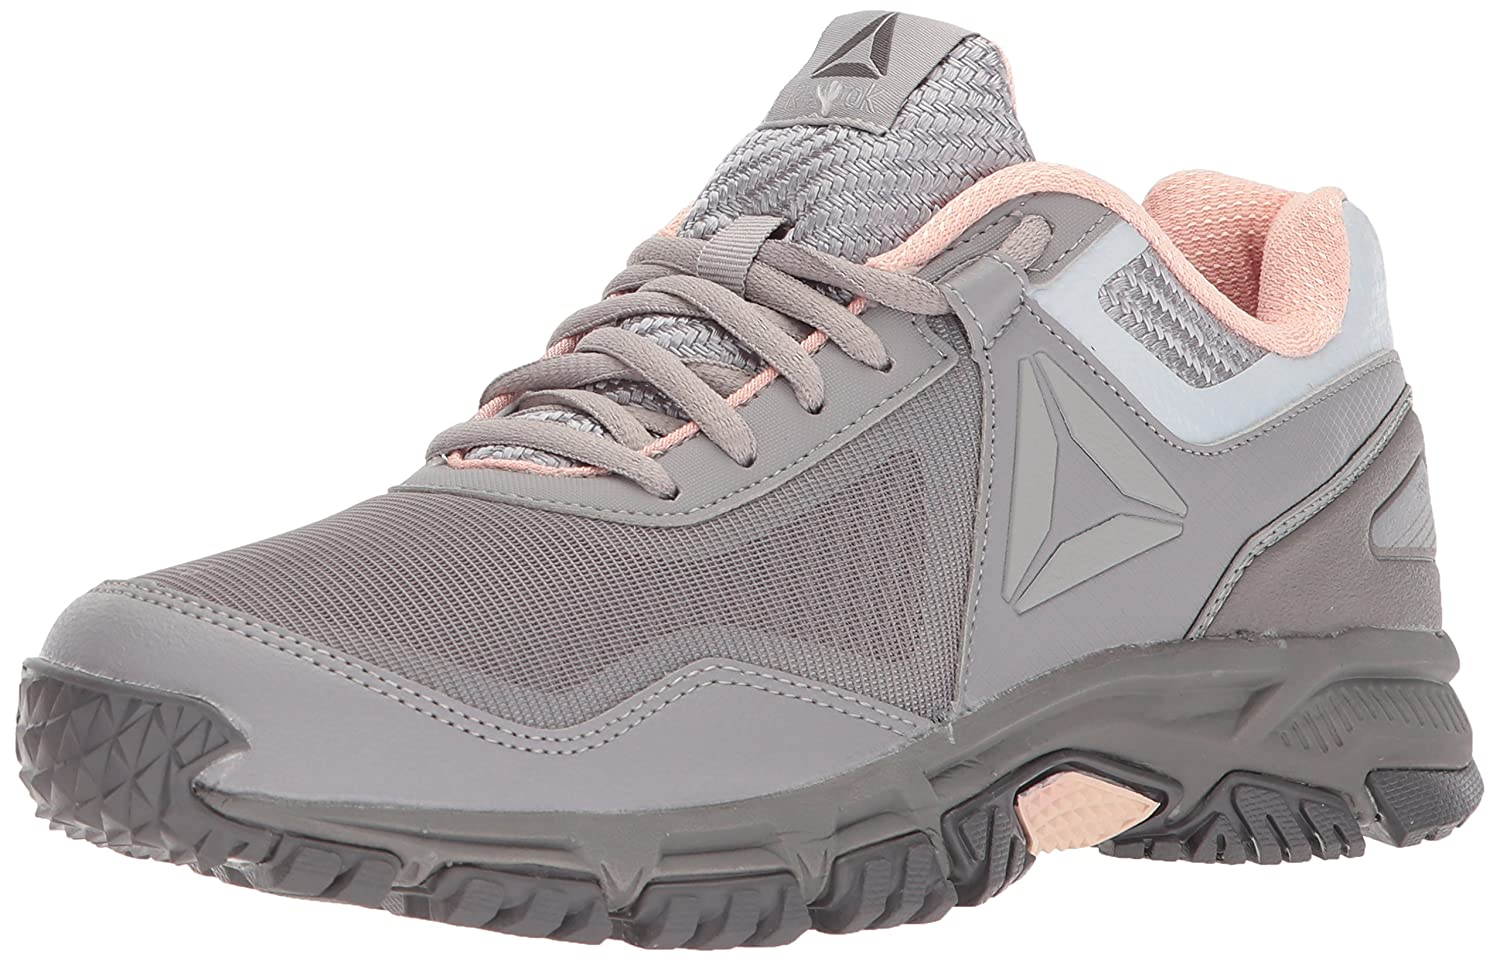 Reebok Women's Ridgerider Trail 3.0 Sneaker B0714M67H4 6.5 B(M) US|Powder Grey/Smoky Taupe/Urban Grey/Desert Dust